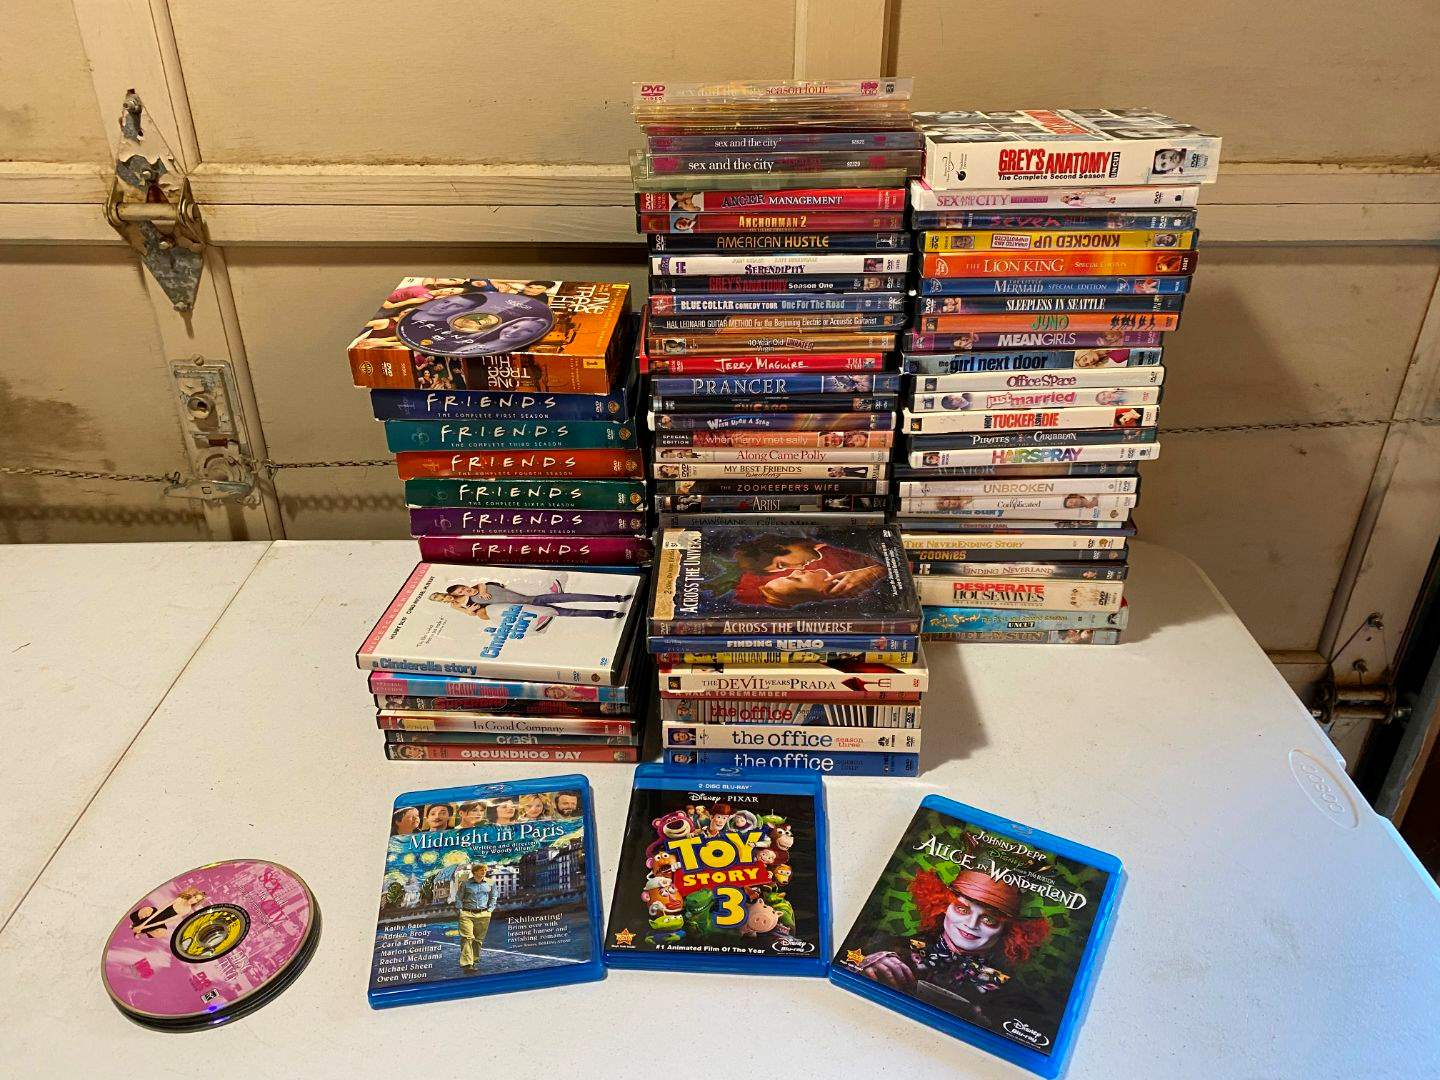 Lot # 218 - DVD's: Friends, Lion King, Hairspray, The Office, The Zoo Keepers Wife, Goonies & More - (See Pictures) (main image)